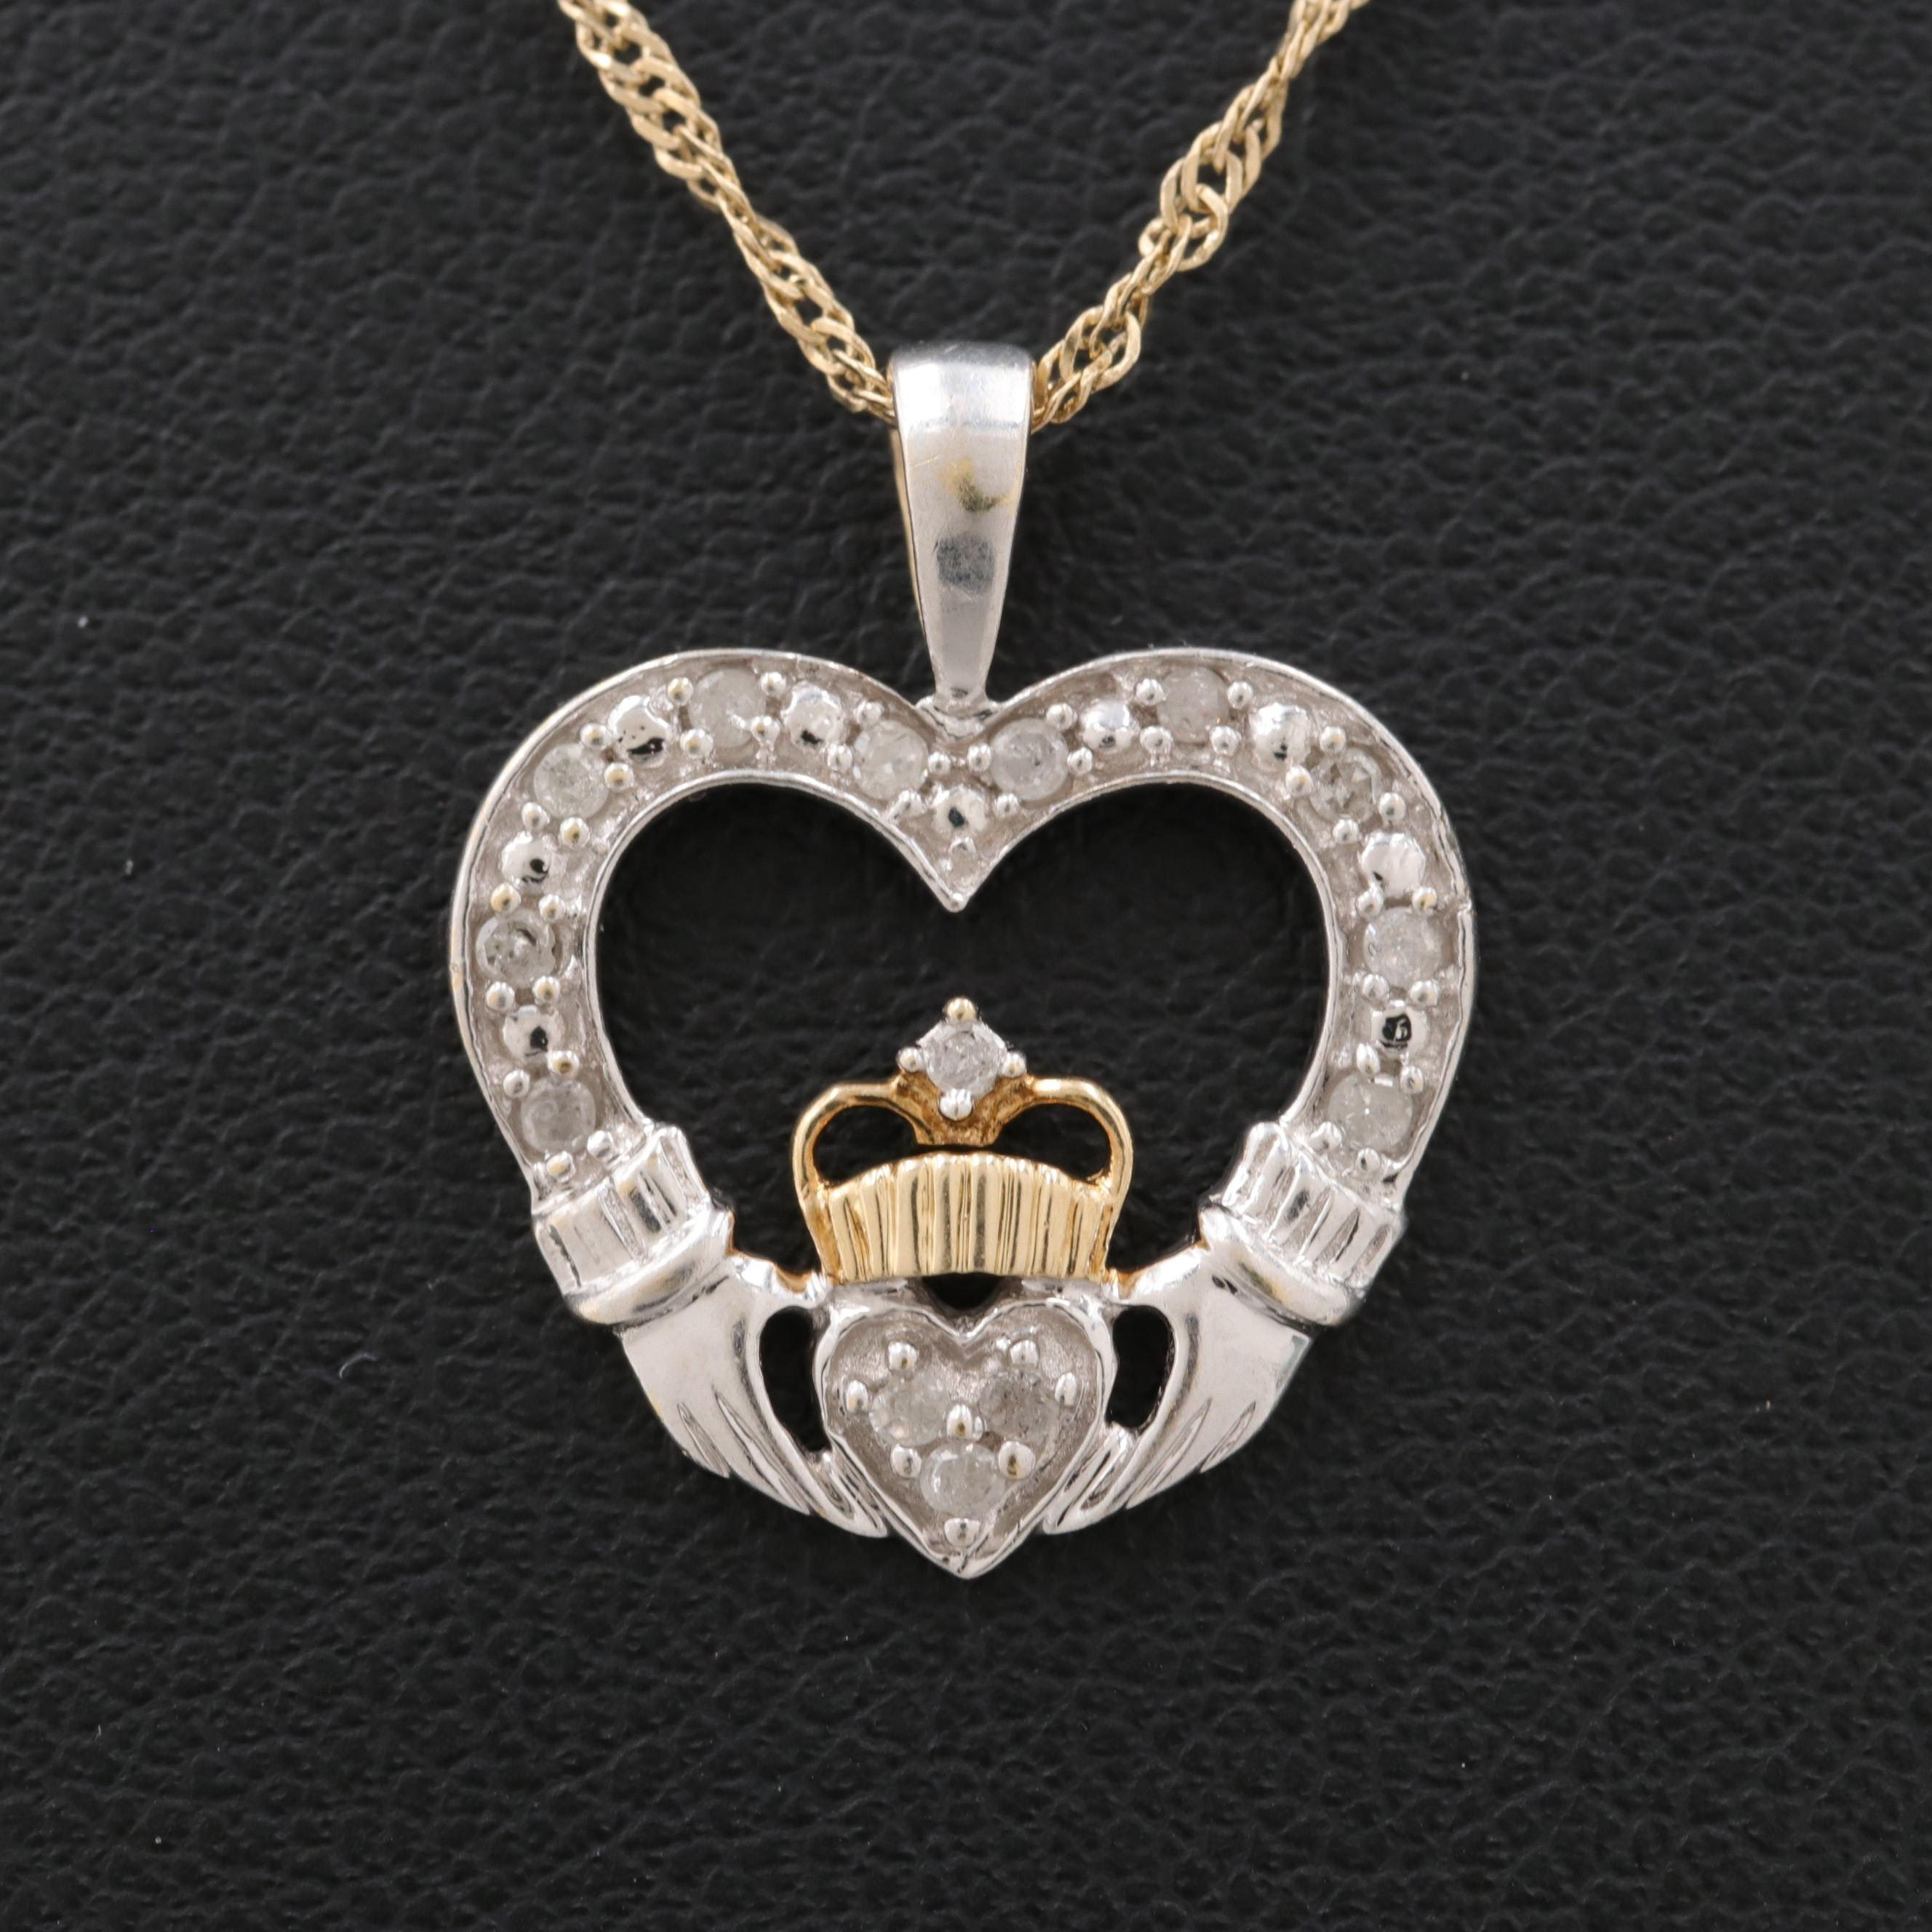 14K Yellow and White Gold Diamond Claddagh Necklace